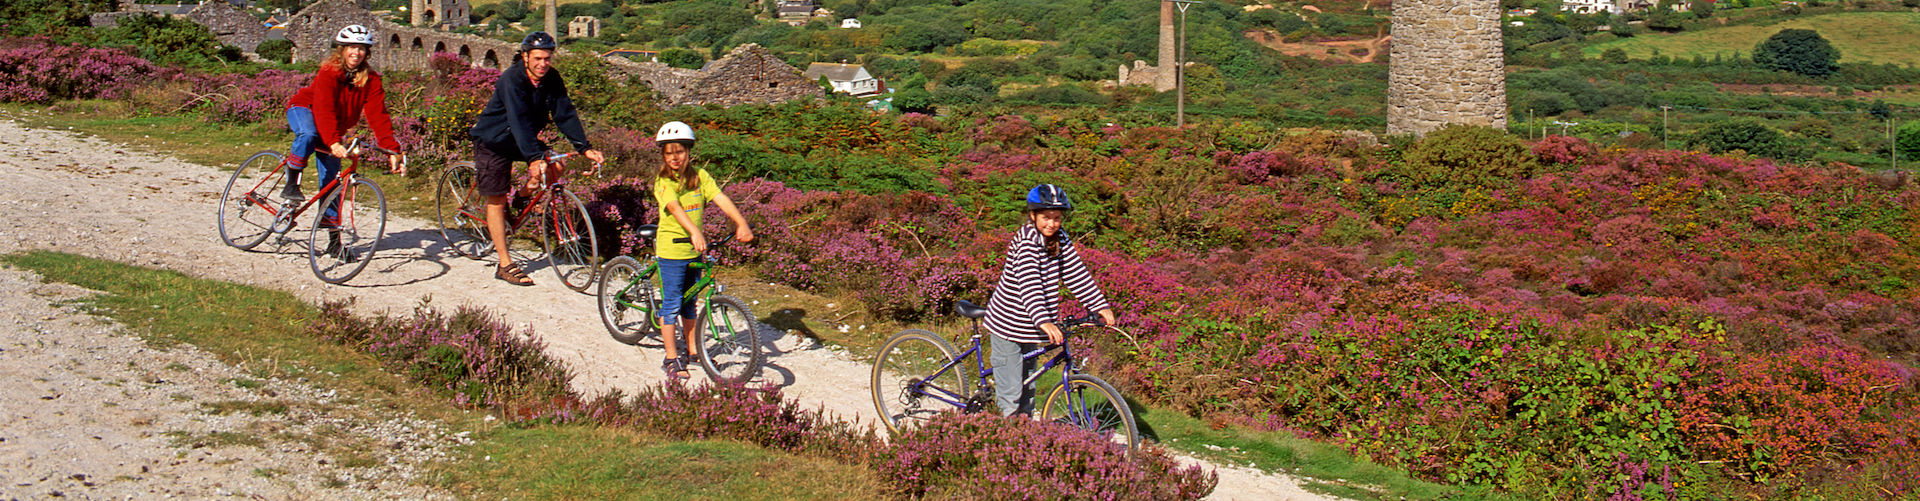 A family ride their bikes on the Mineral Tramway in Cornwall.